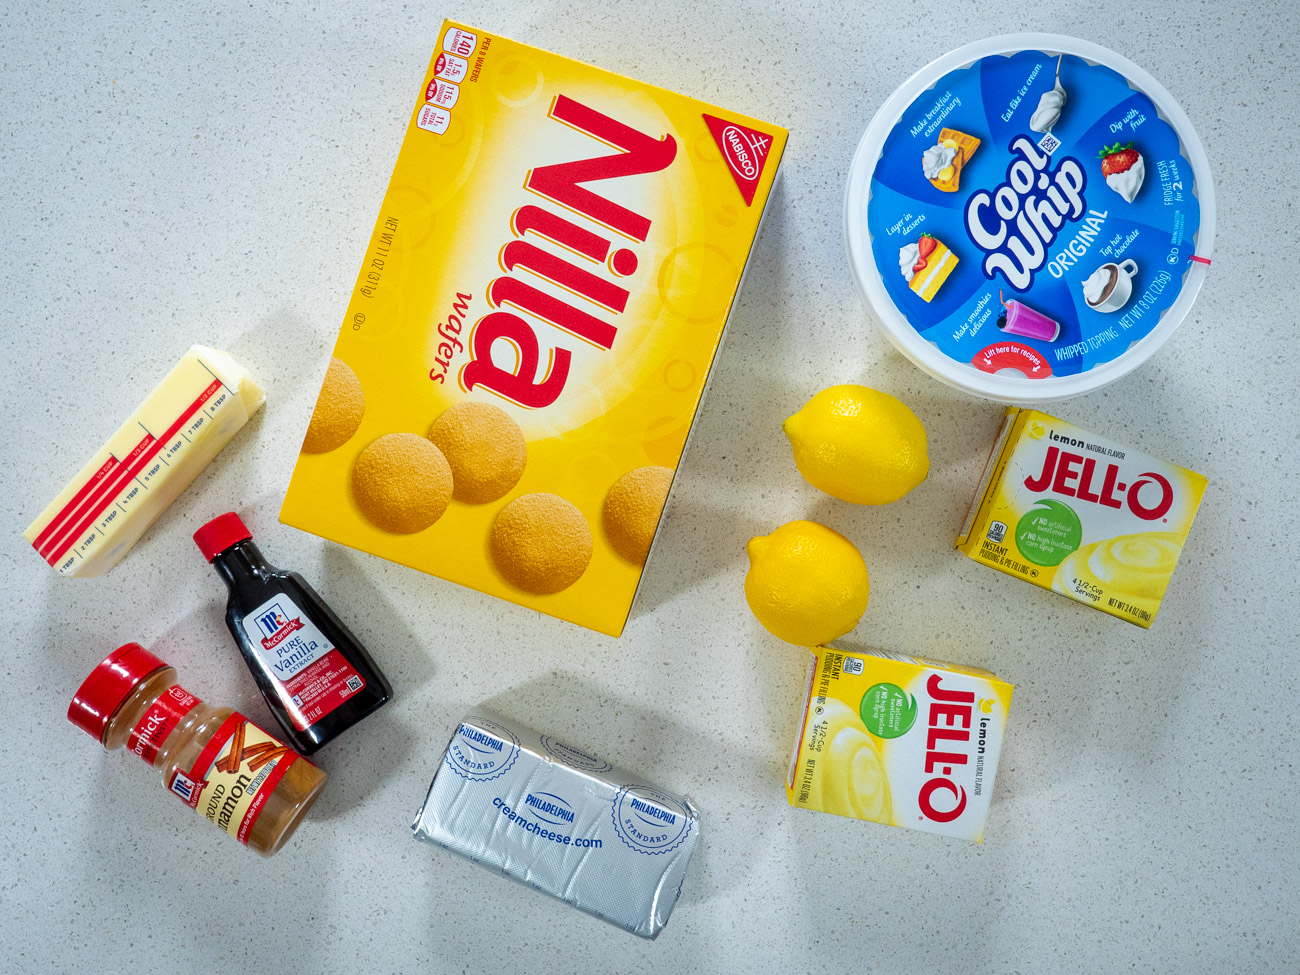 Ingredients laid out for lemon lush